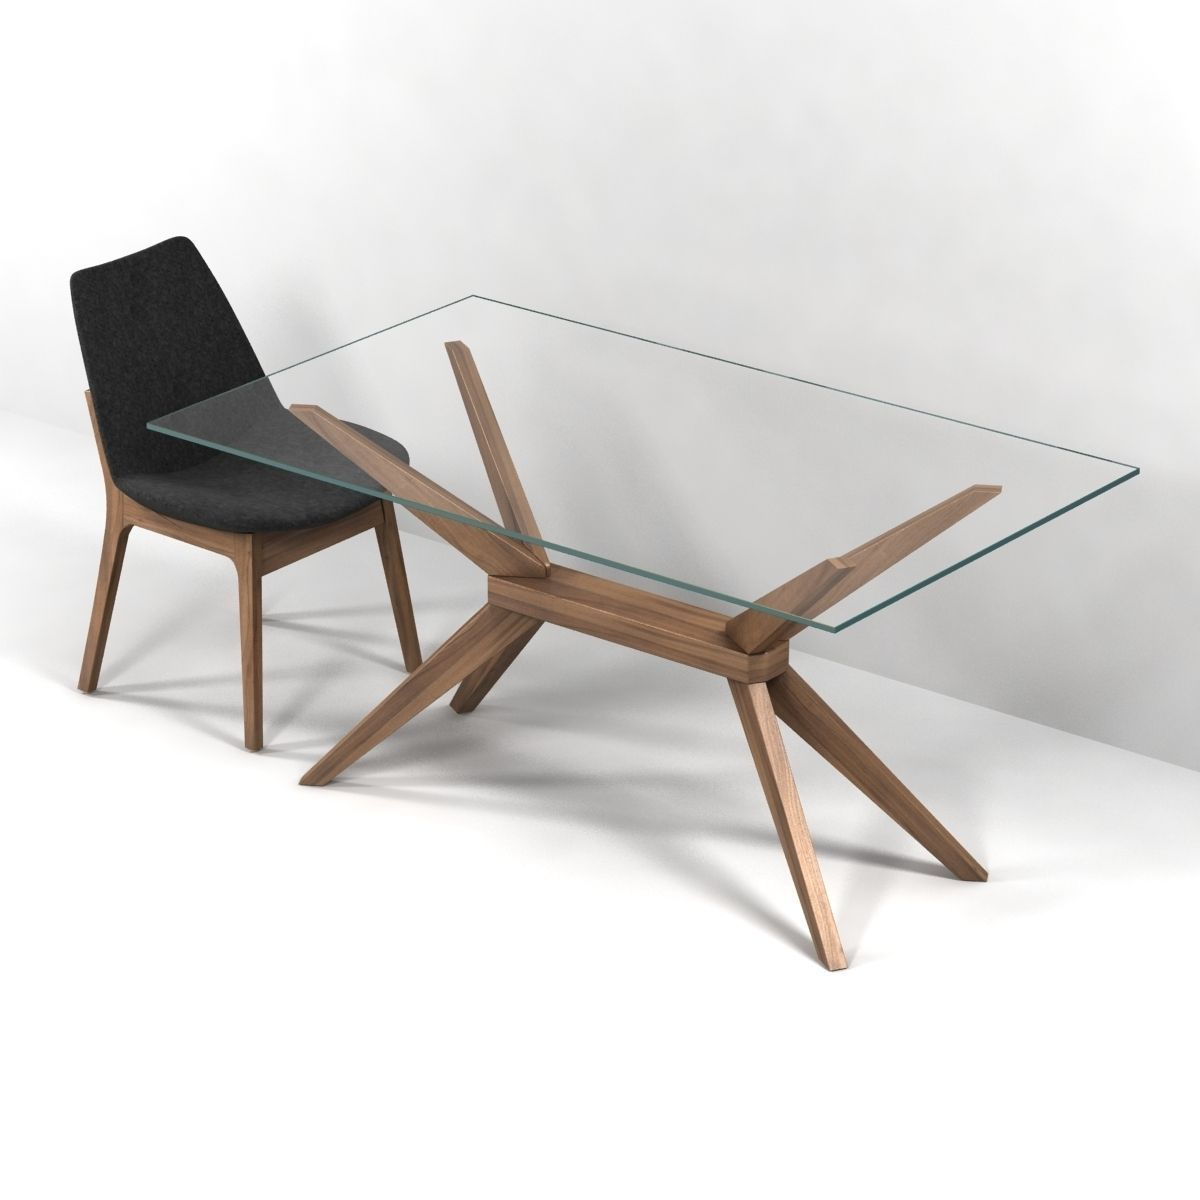 Glass Dining Table And Chairs Magna Glass Dining Table By Inmod Sohoconcept Eiffel Wood Chair 3d Model